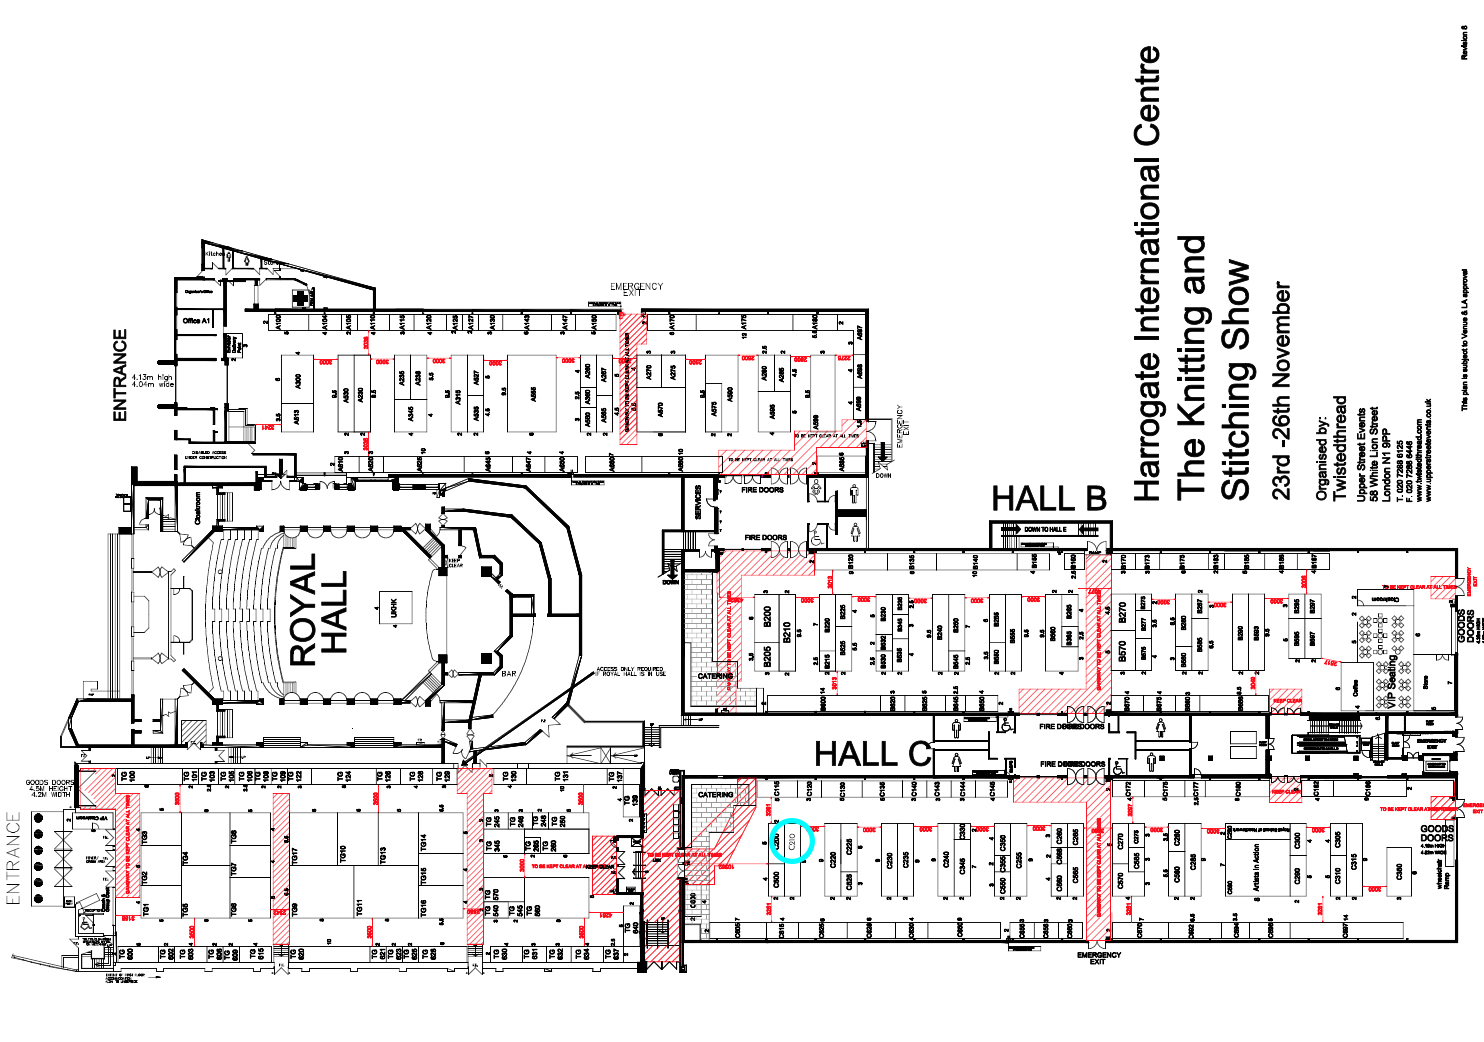 The location of the Ragged Life stand at the Harrogate Knitting & Stitching Show